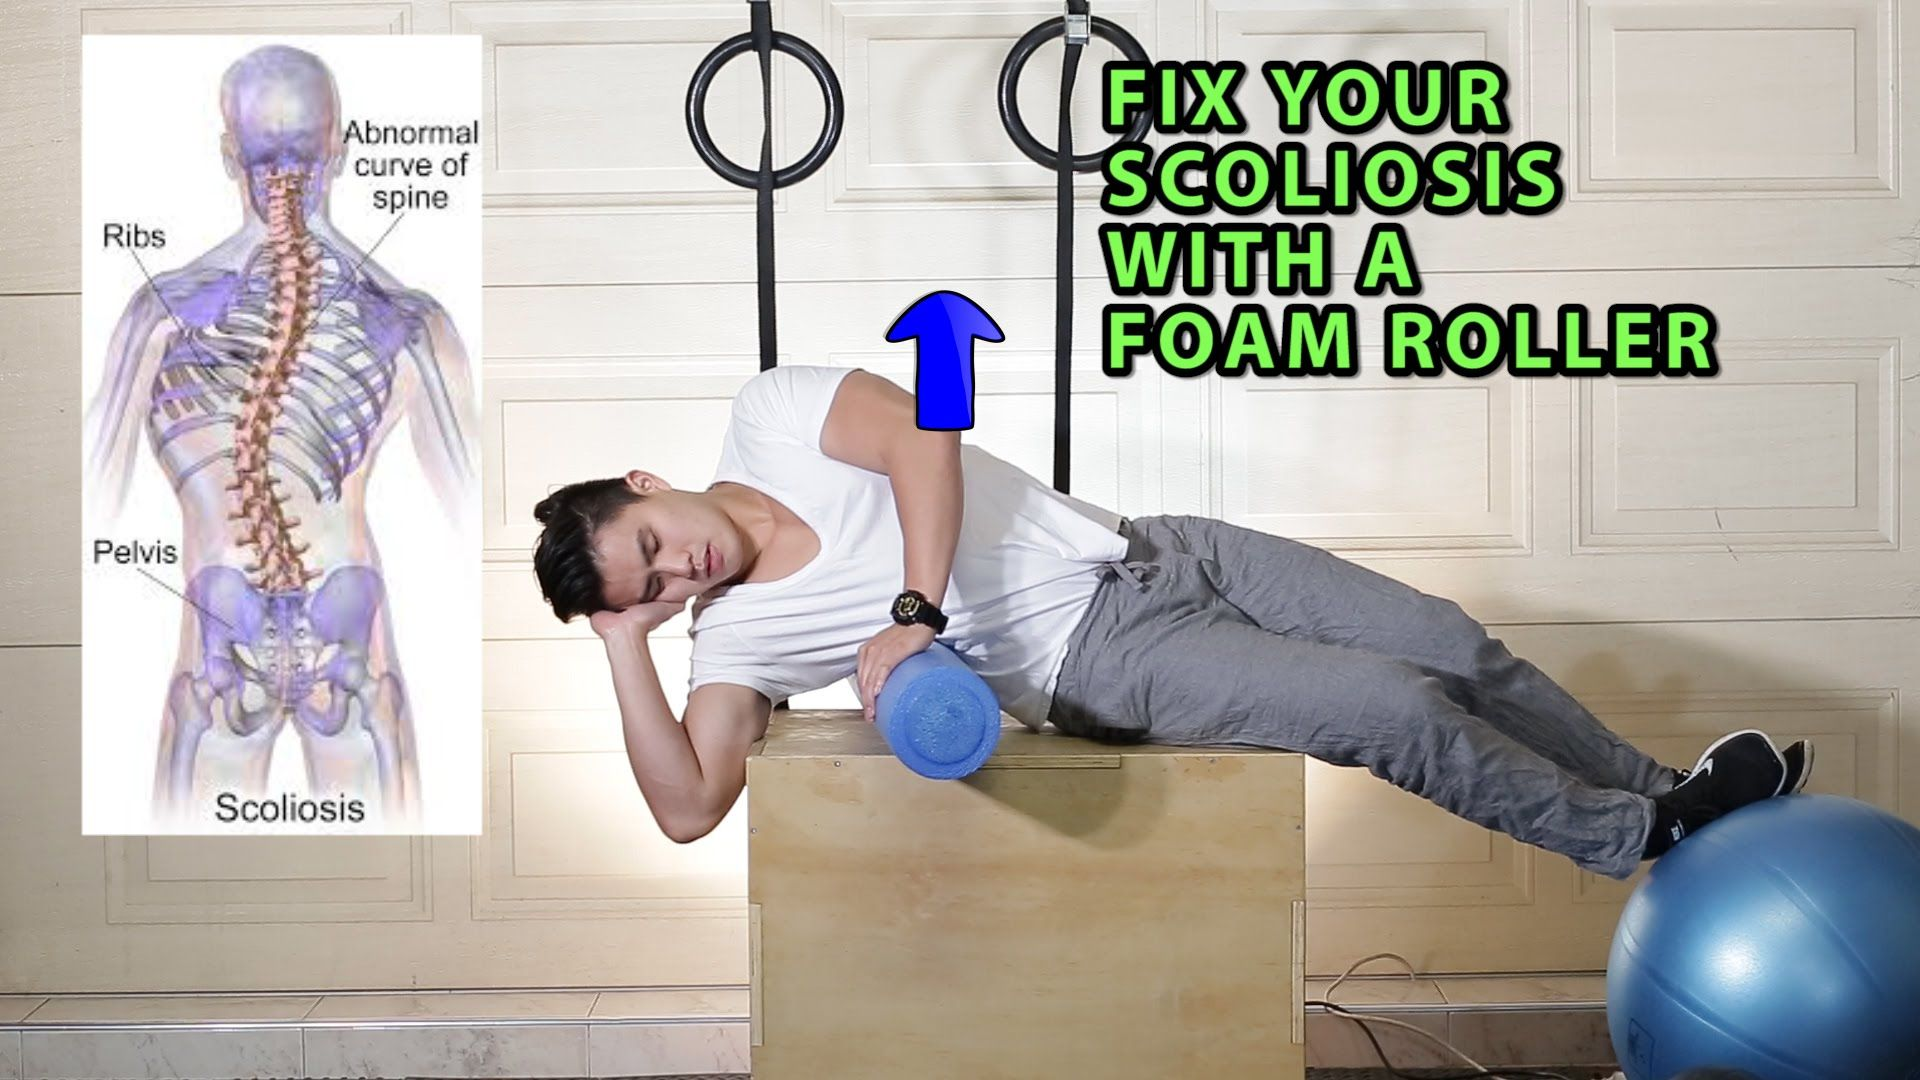 Fix Your Scoliosis with a Foam Roller (Scroth's Method